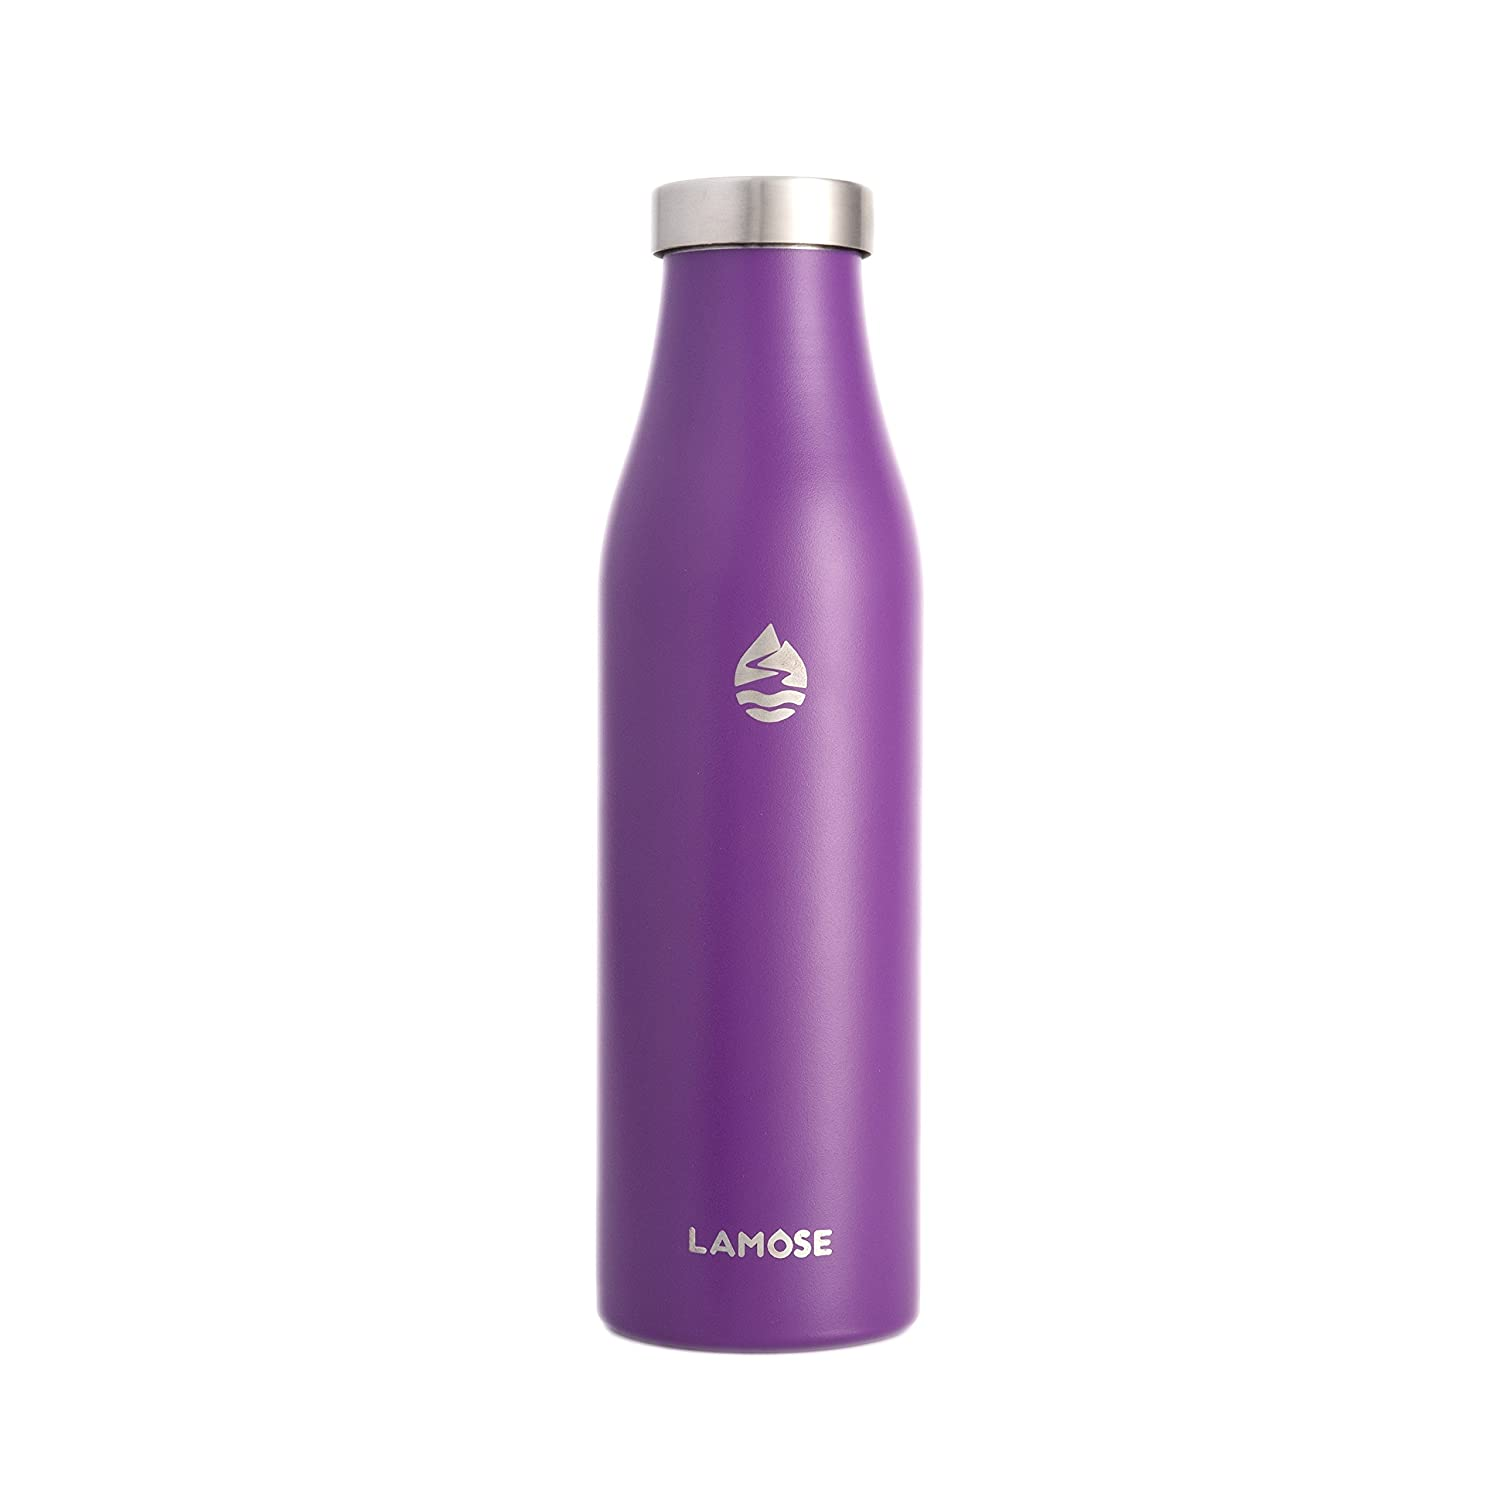 18//8 Kitchen-Grade Stainless Steel 21 oz up to 12 hrs hot or 24 hrs Cold 100/% BPA-Free Healthy Choice LAMOSE Turquoise Double-Wall Vacuum Insulated Sports Water Bottle w//Wide Mouth lids